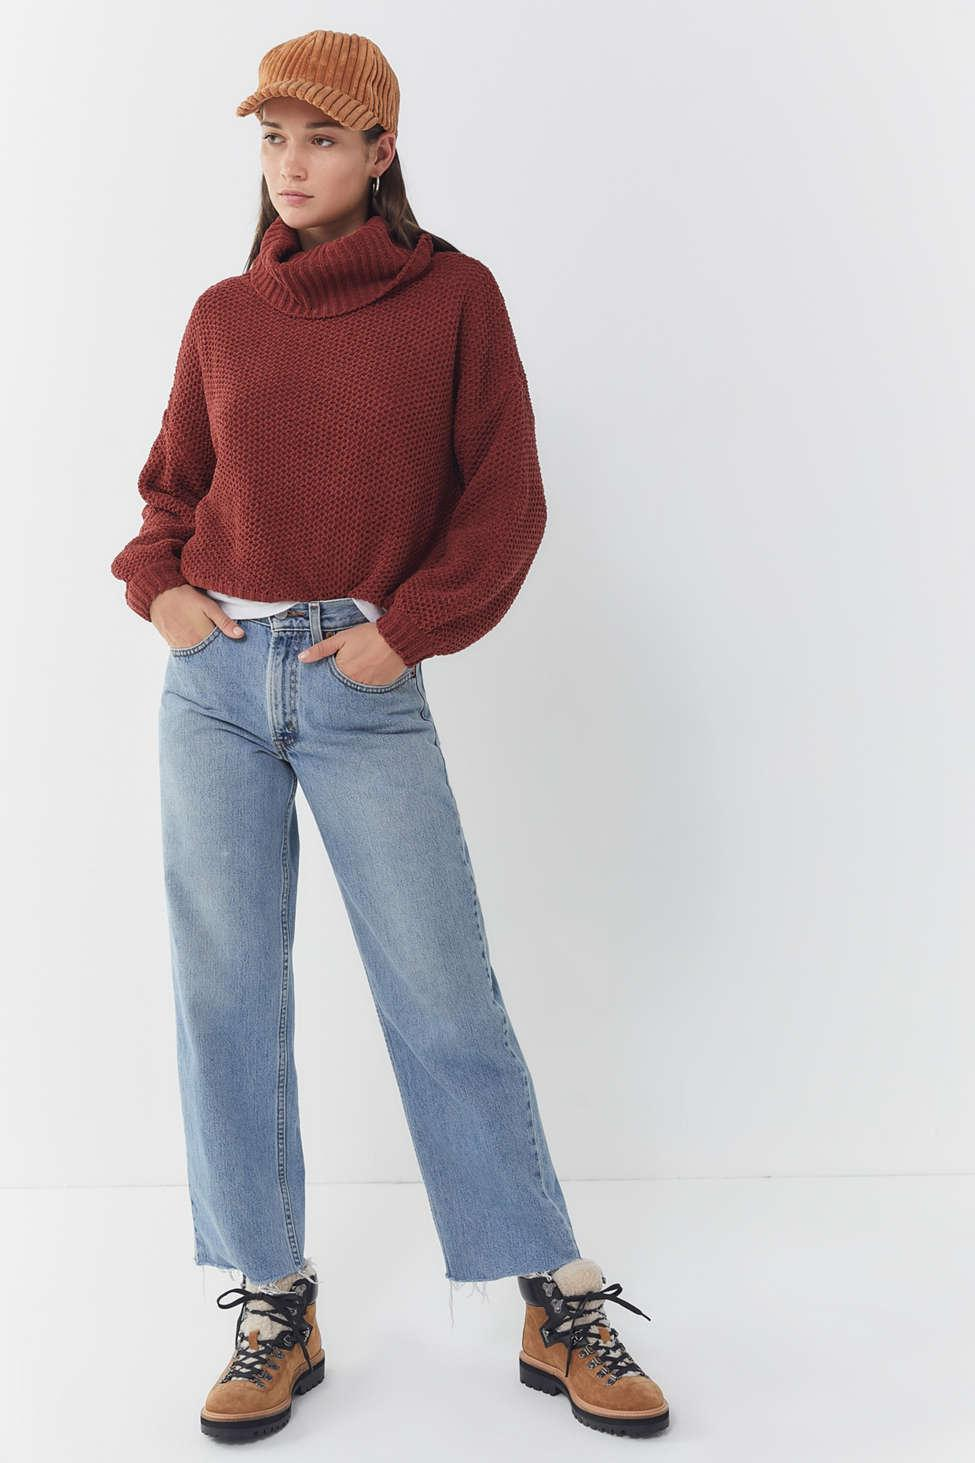 bd3c99f3a Lyst - Urban Outfitters Sitka Plush Turtleneck Sweater in Brown